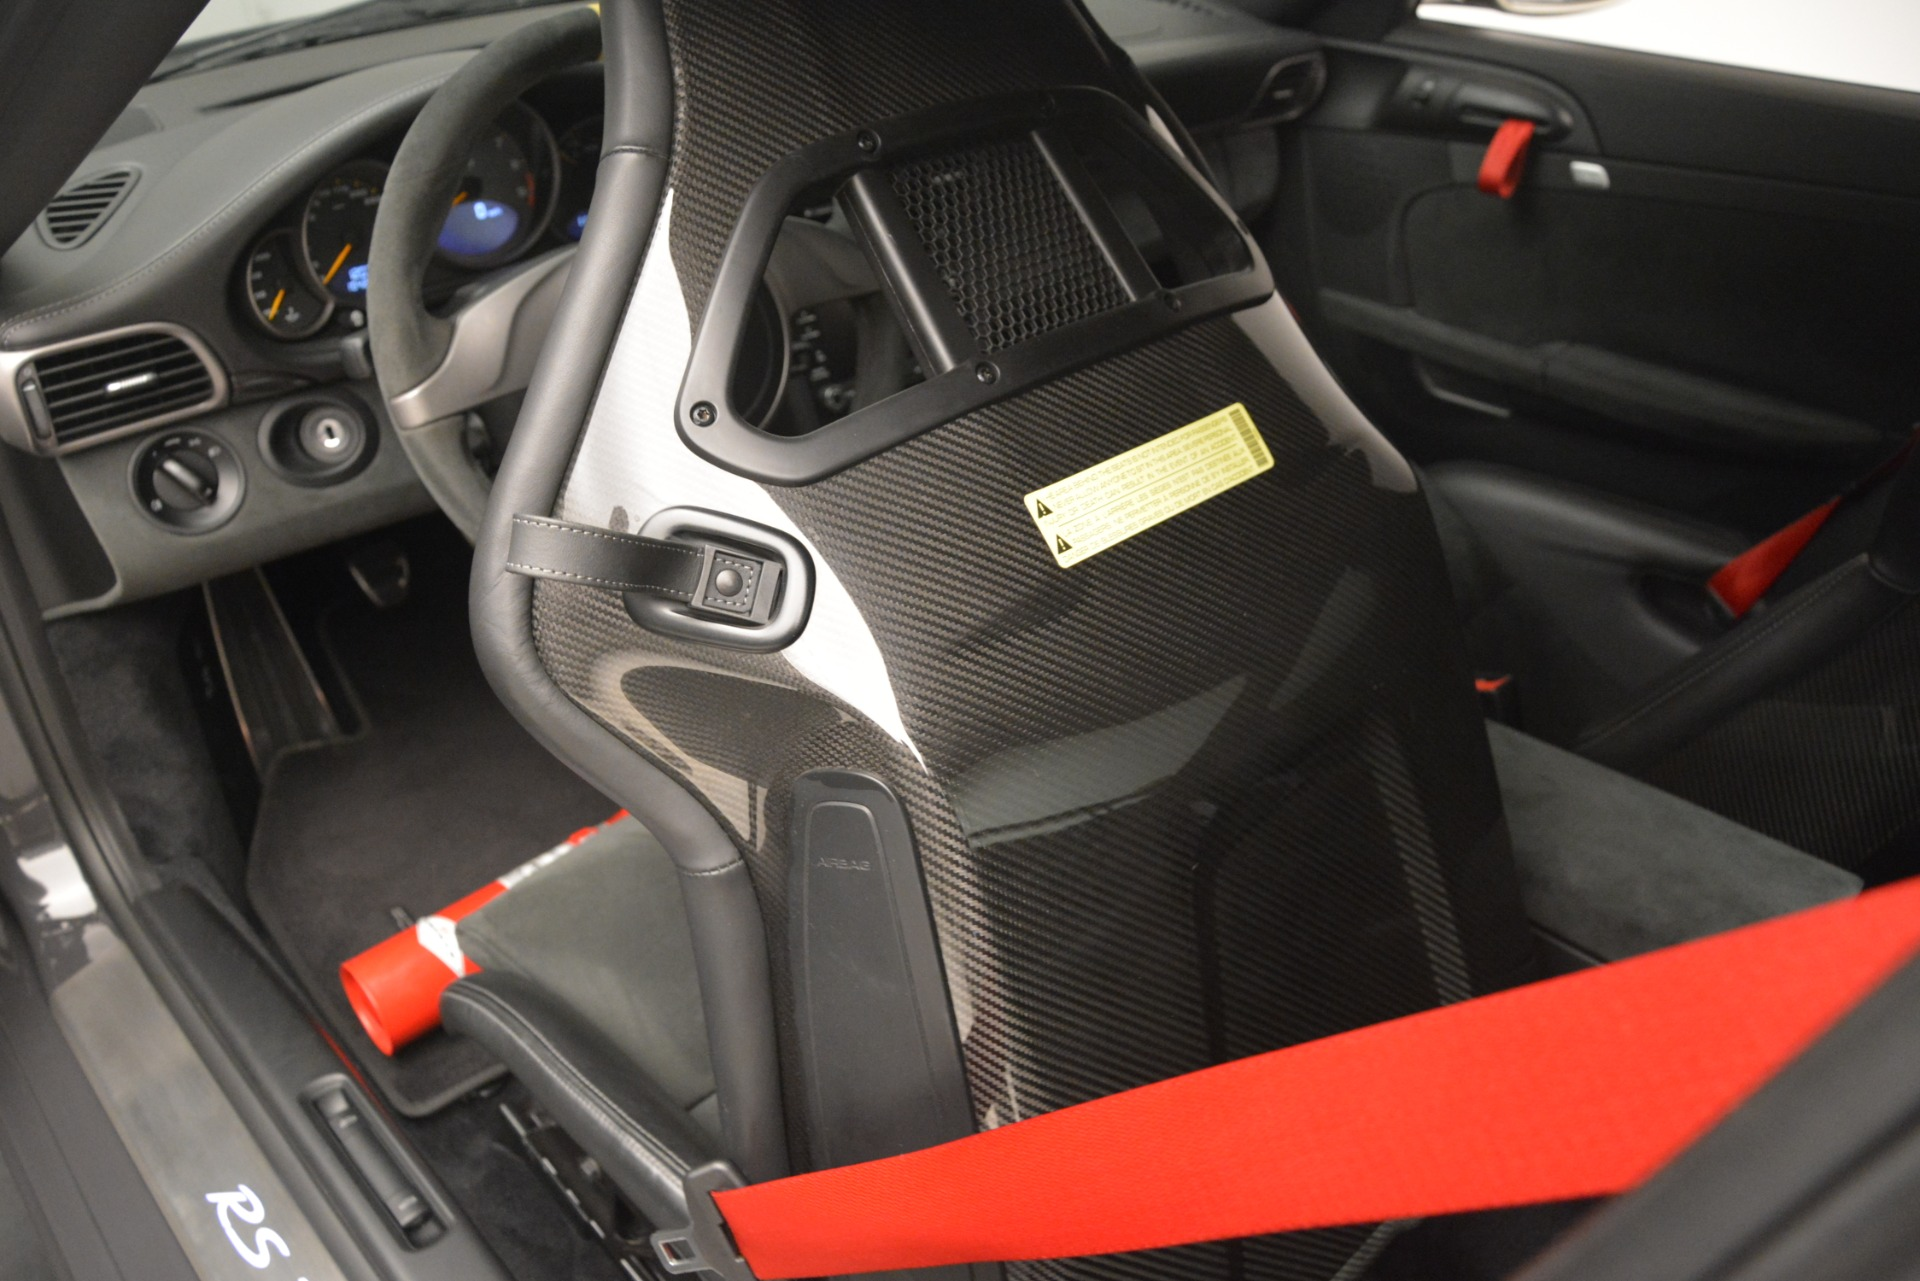 Used 2011 Porsche 911 GT3 RS For Sale In Greenwich, CT 3012_p21